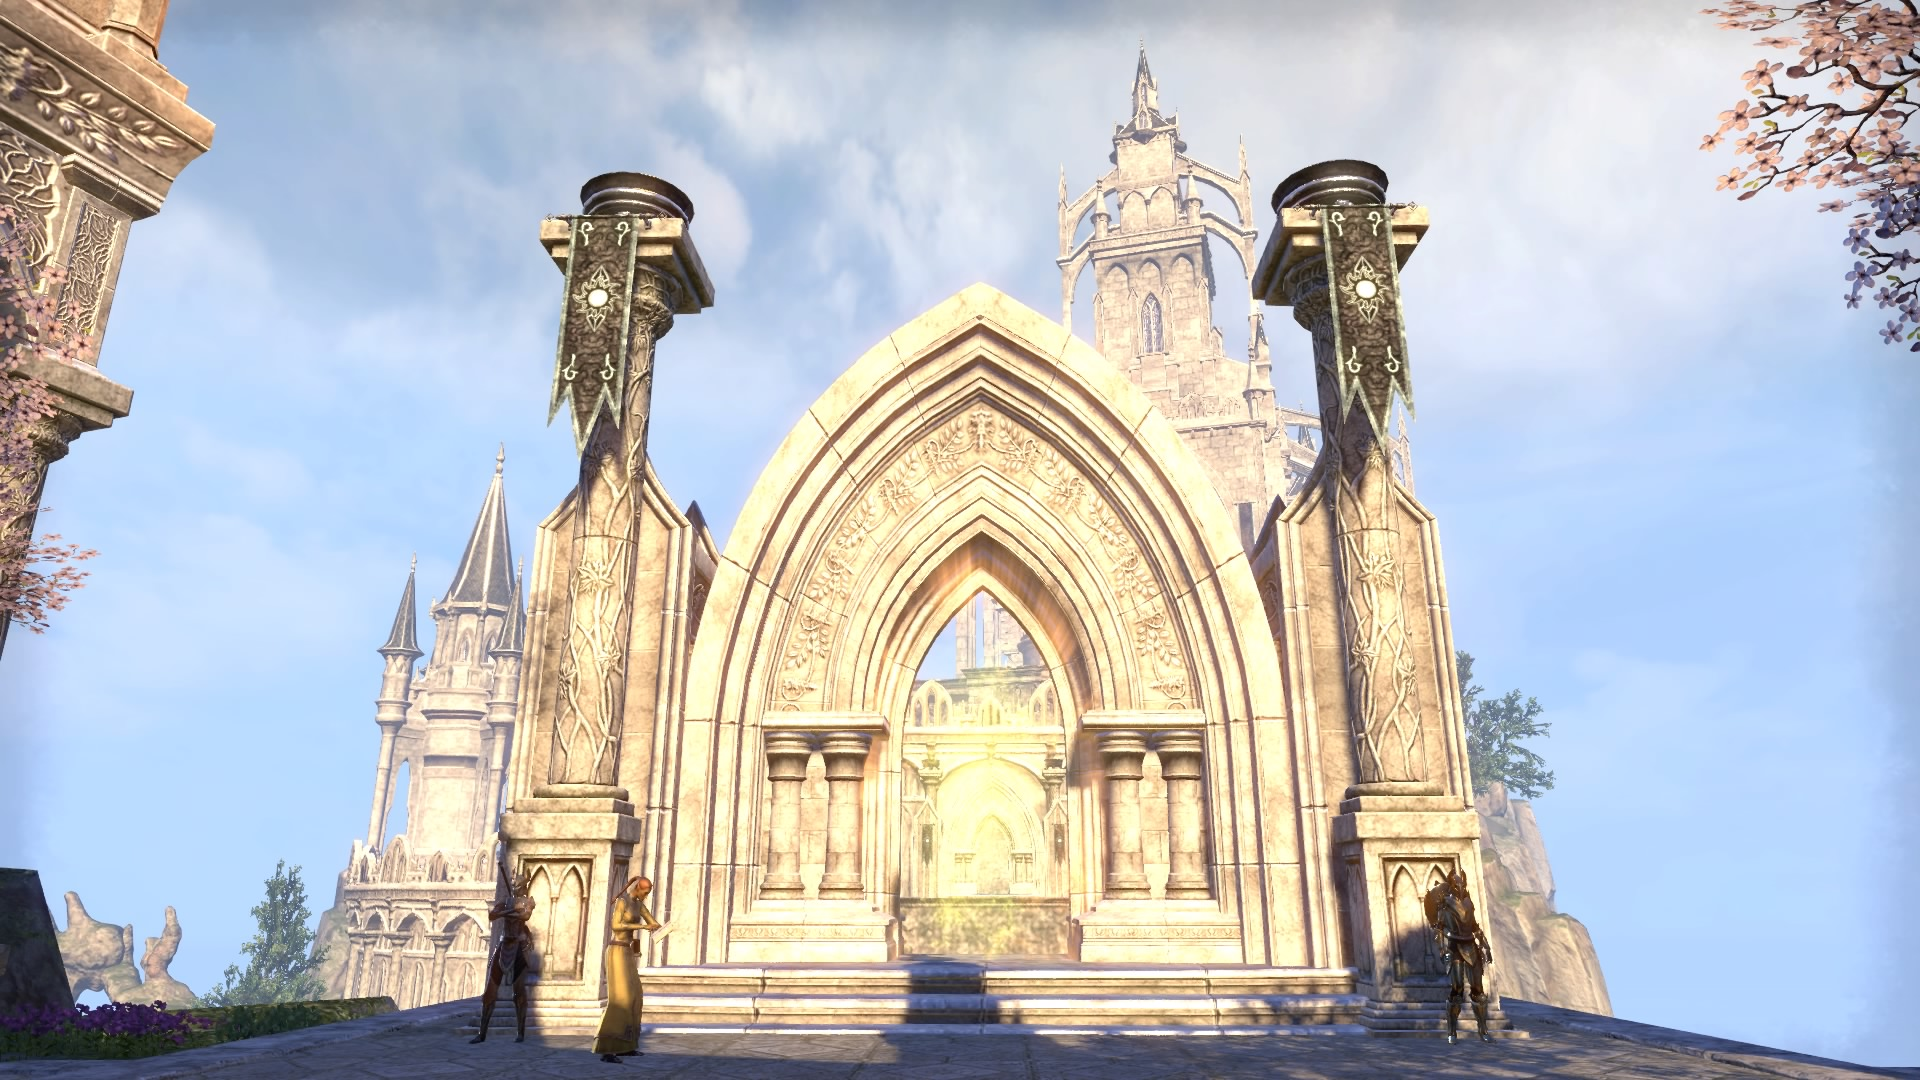 Portal to the Sapiarchs College